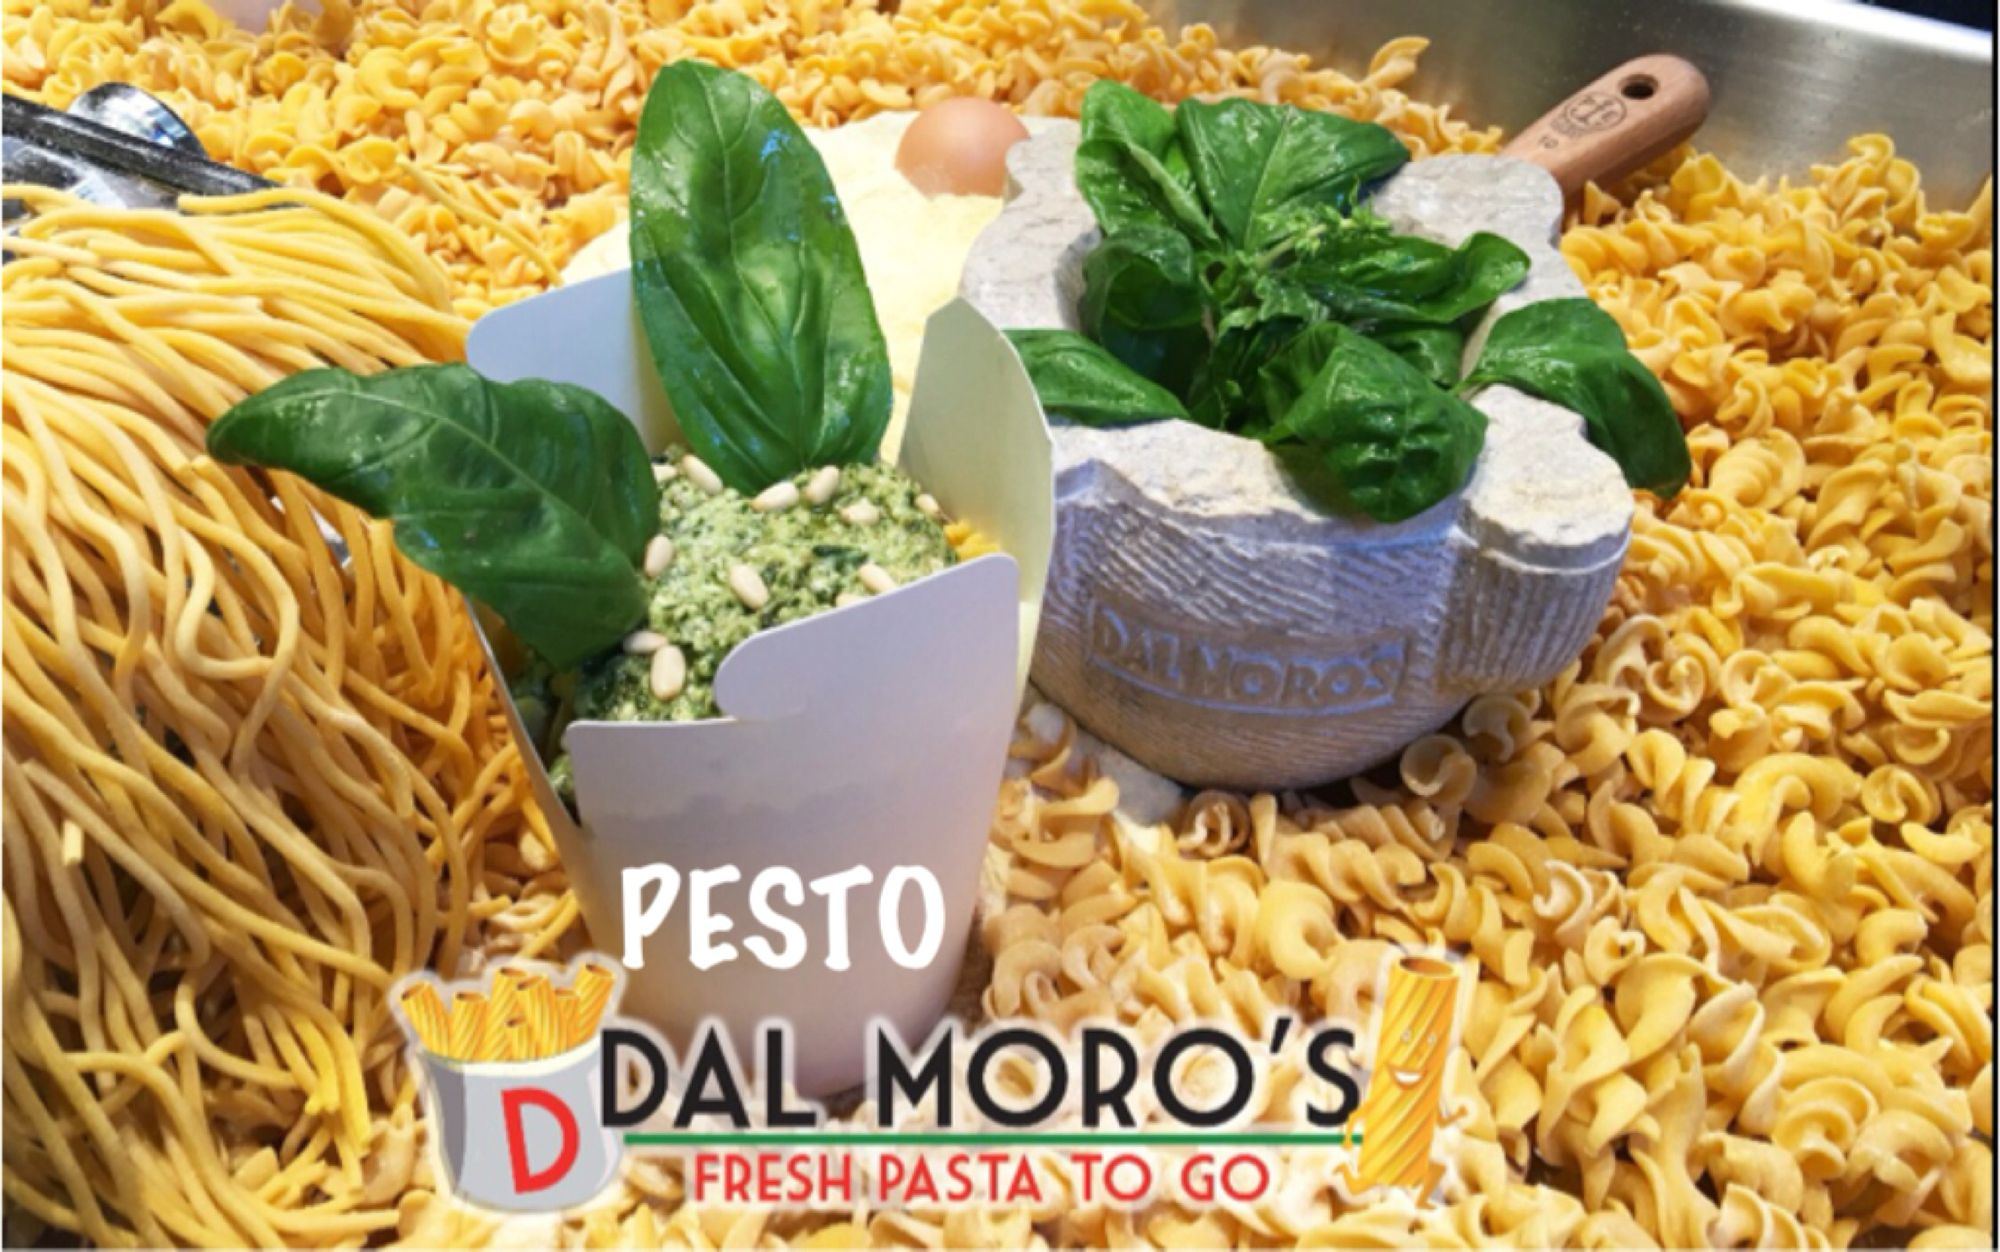 Our Pesto Sauce Now available at: Dal Moro's - Fresh Pasta To Go